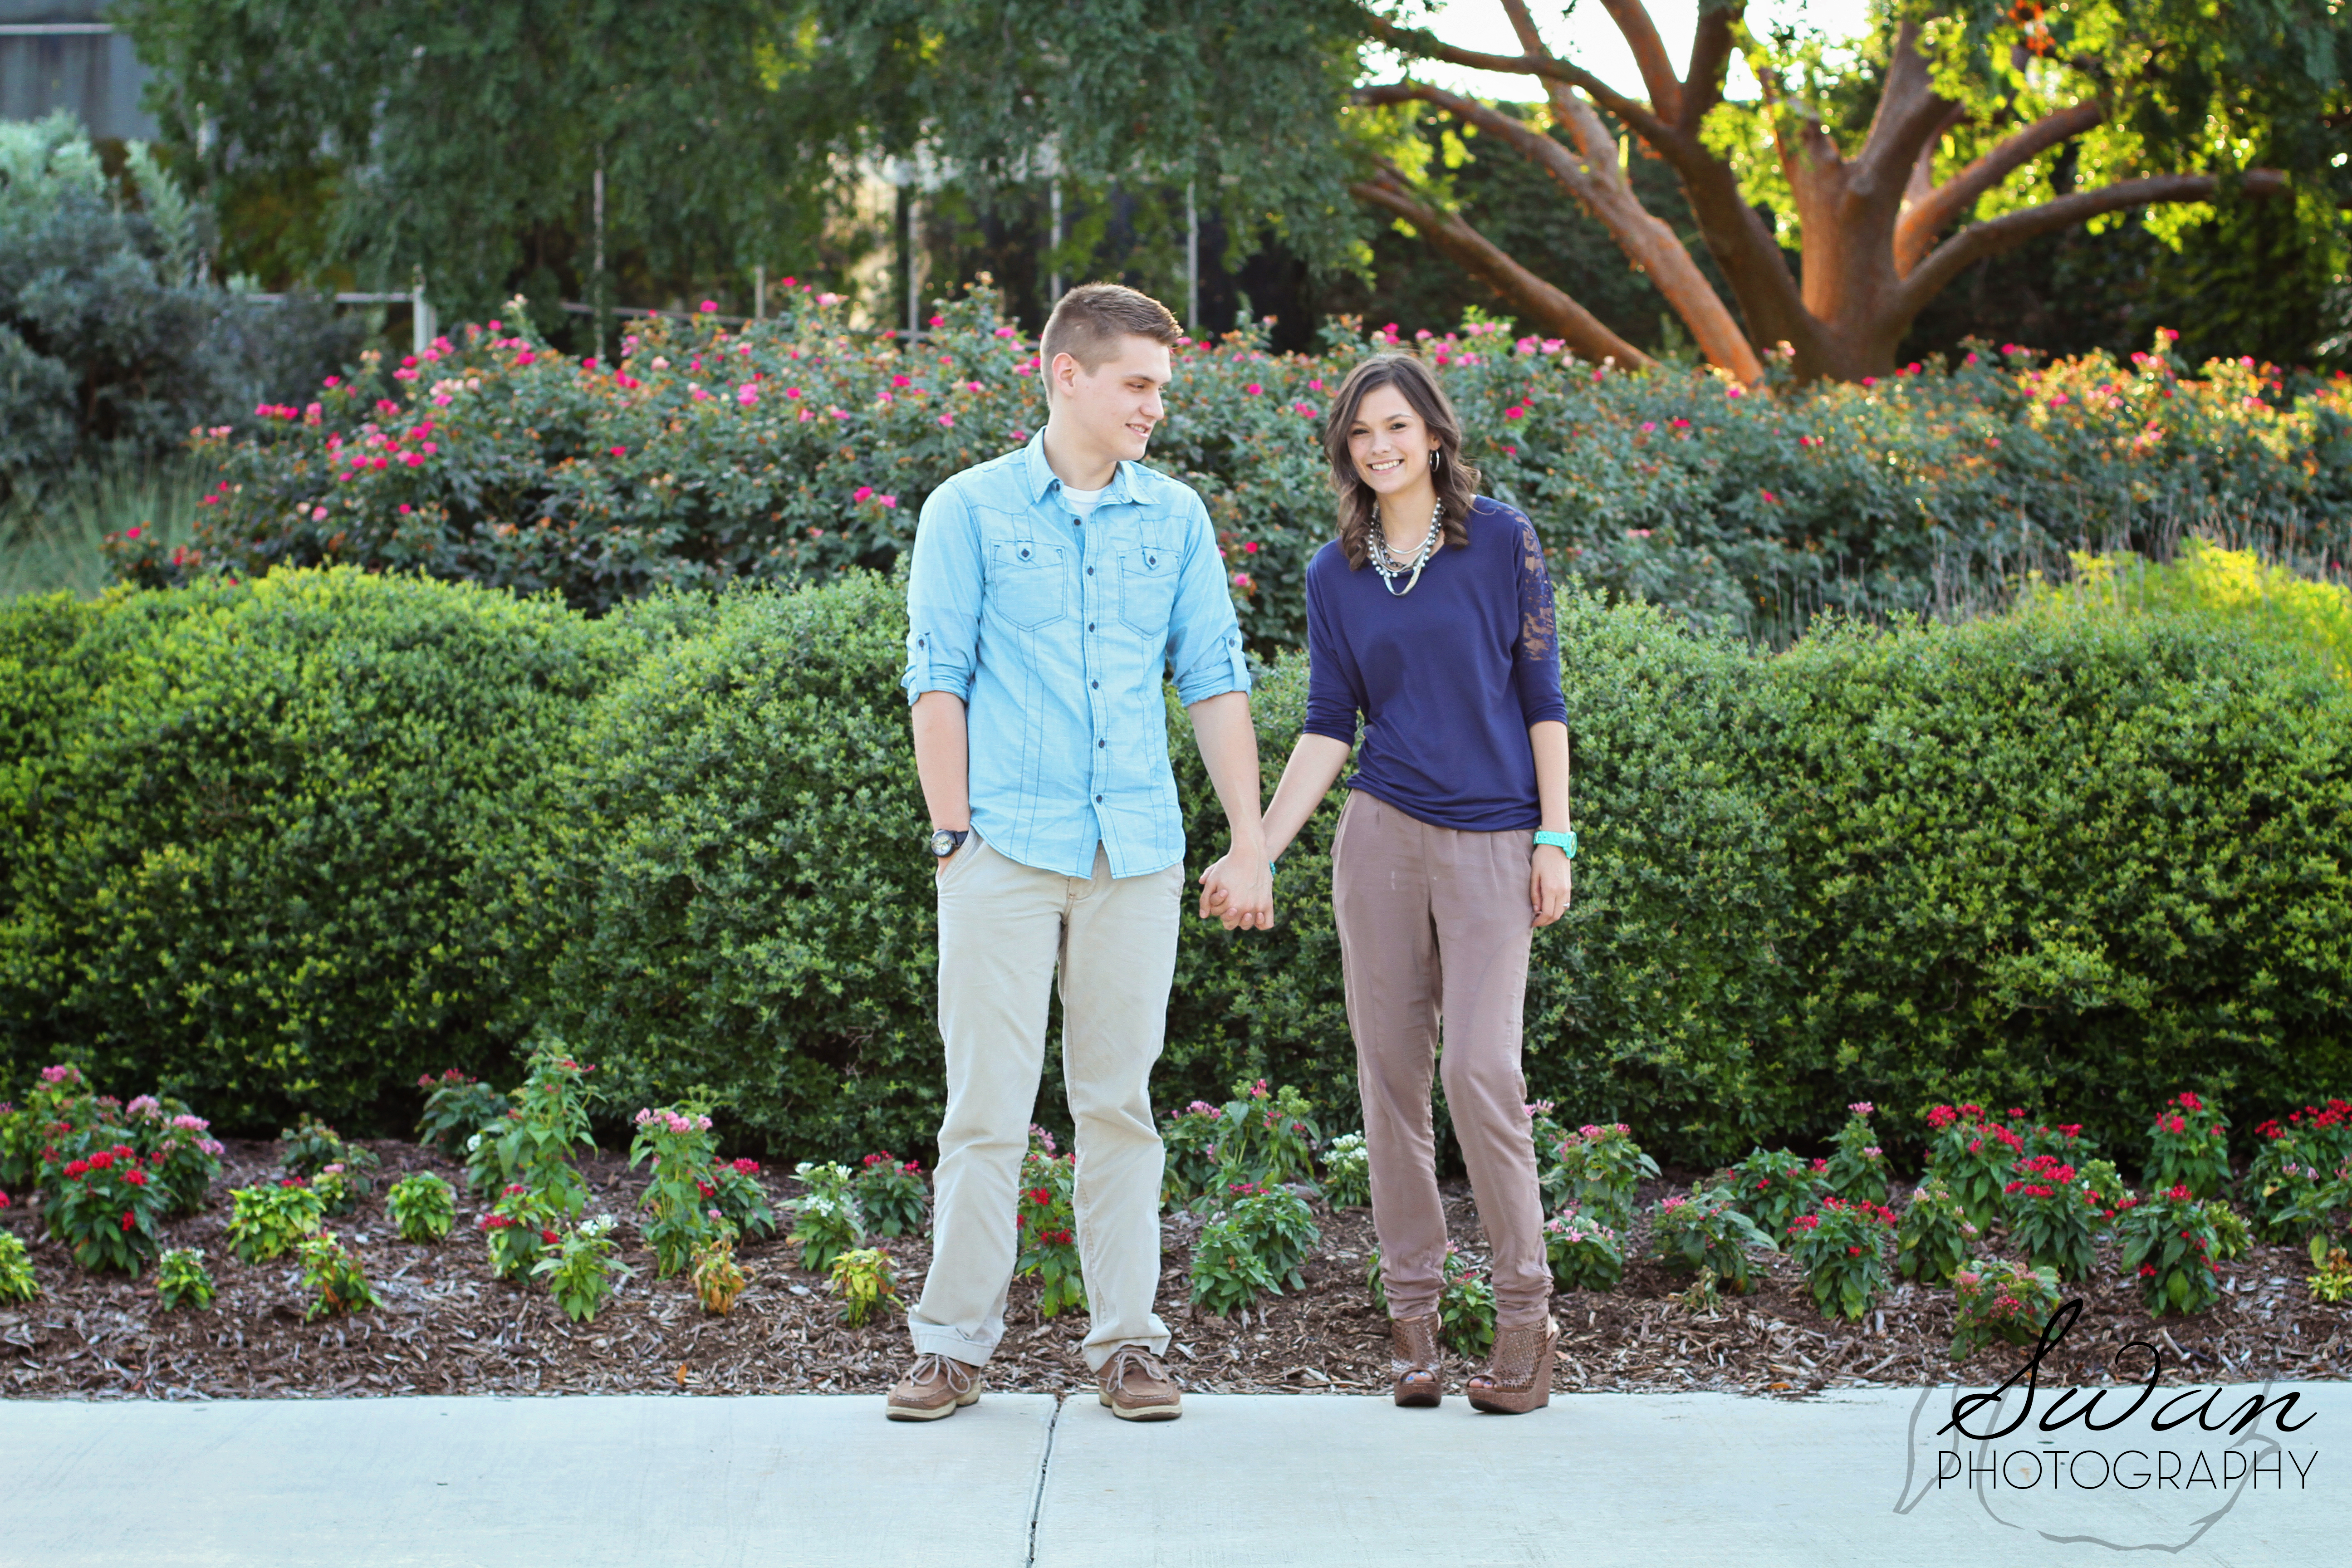 Kyla perrys fort worth botanic garden engagement session for Affordable wedding photography fort worth